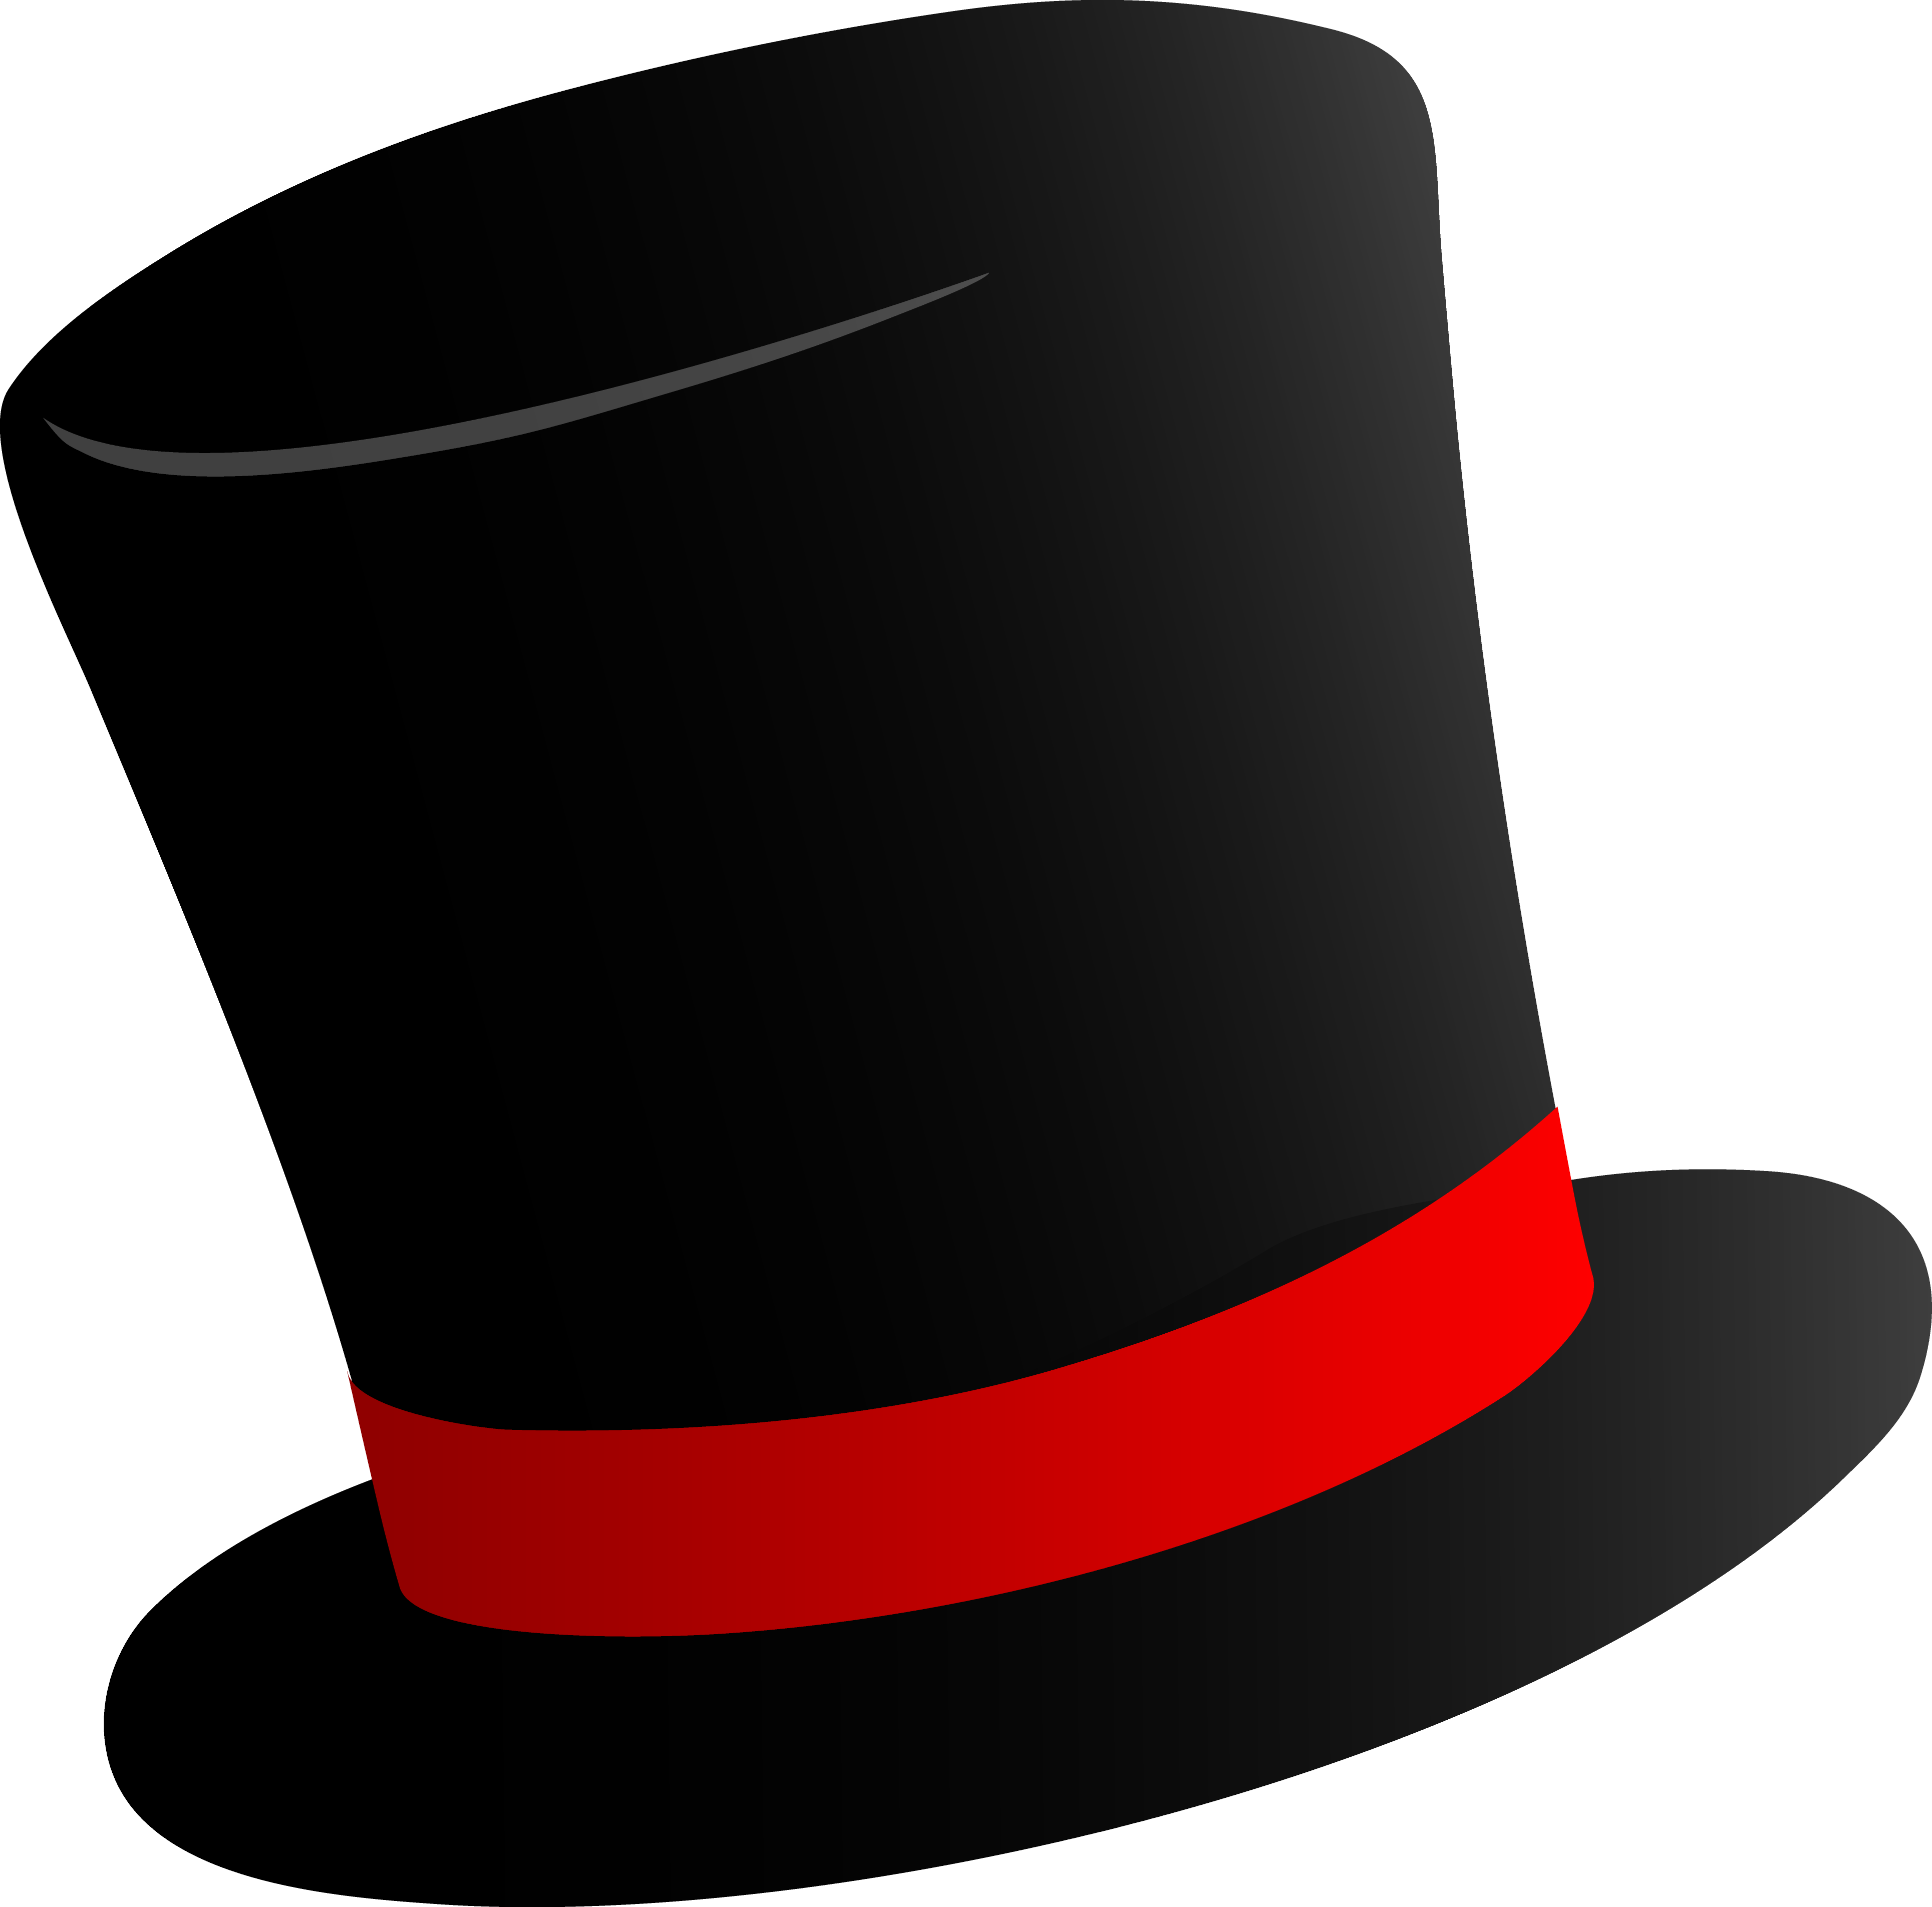 Funny hat clipart image freeuse download Funny hat clipart 6 » Clipart Station image freeuse download